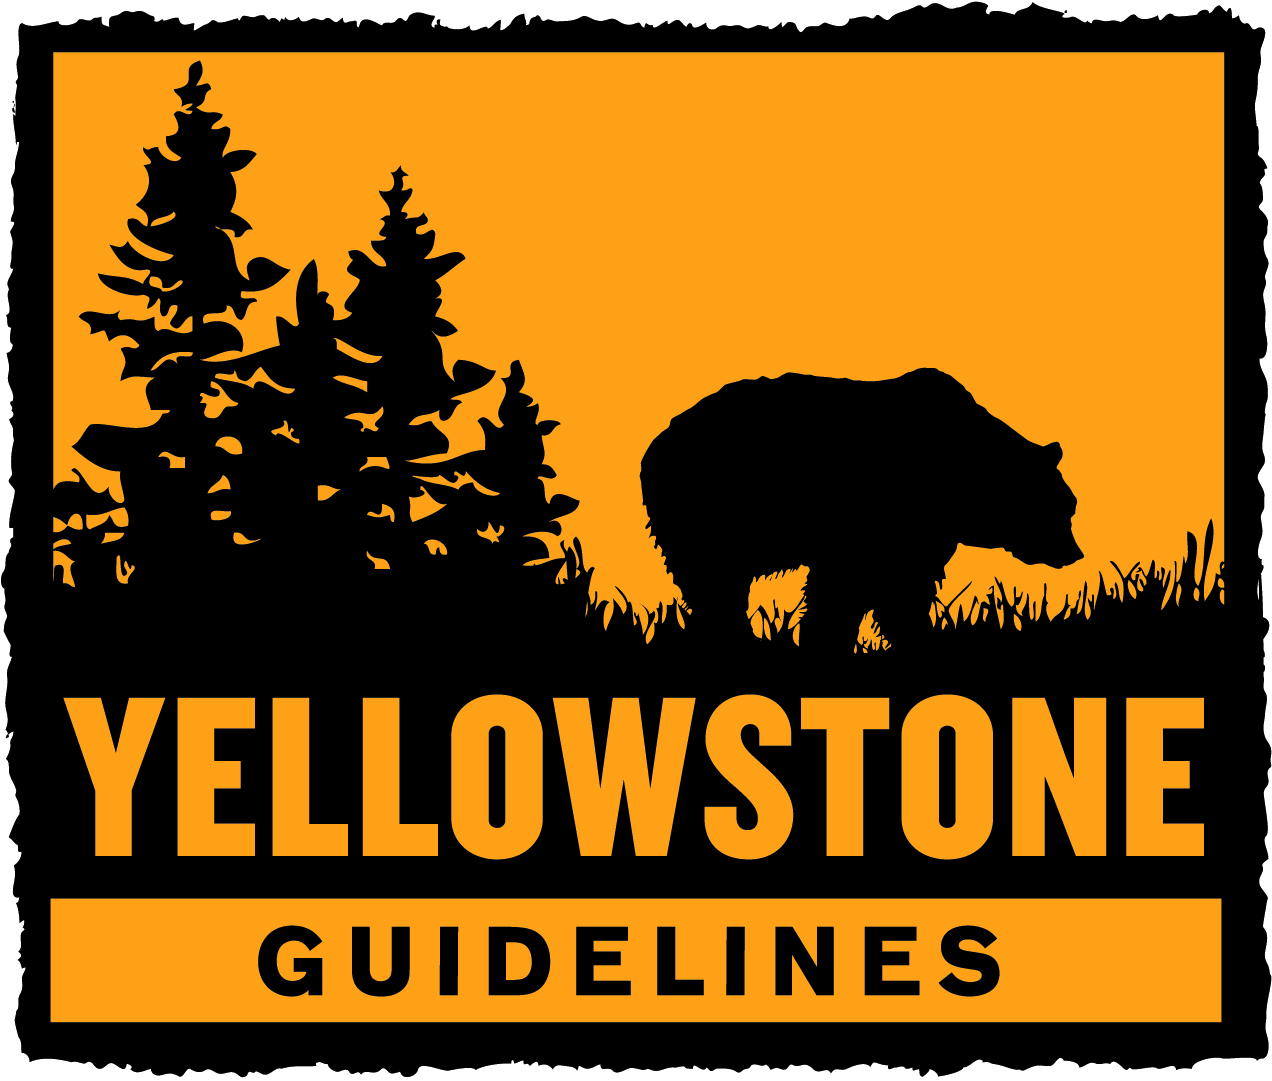 Yellowstone Guidelines Photo